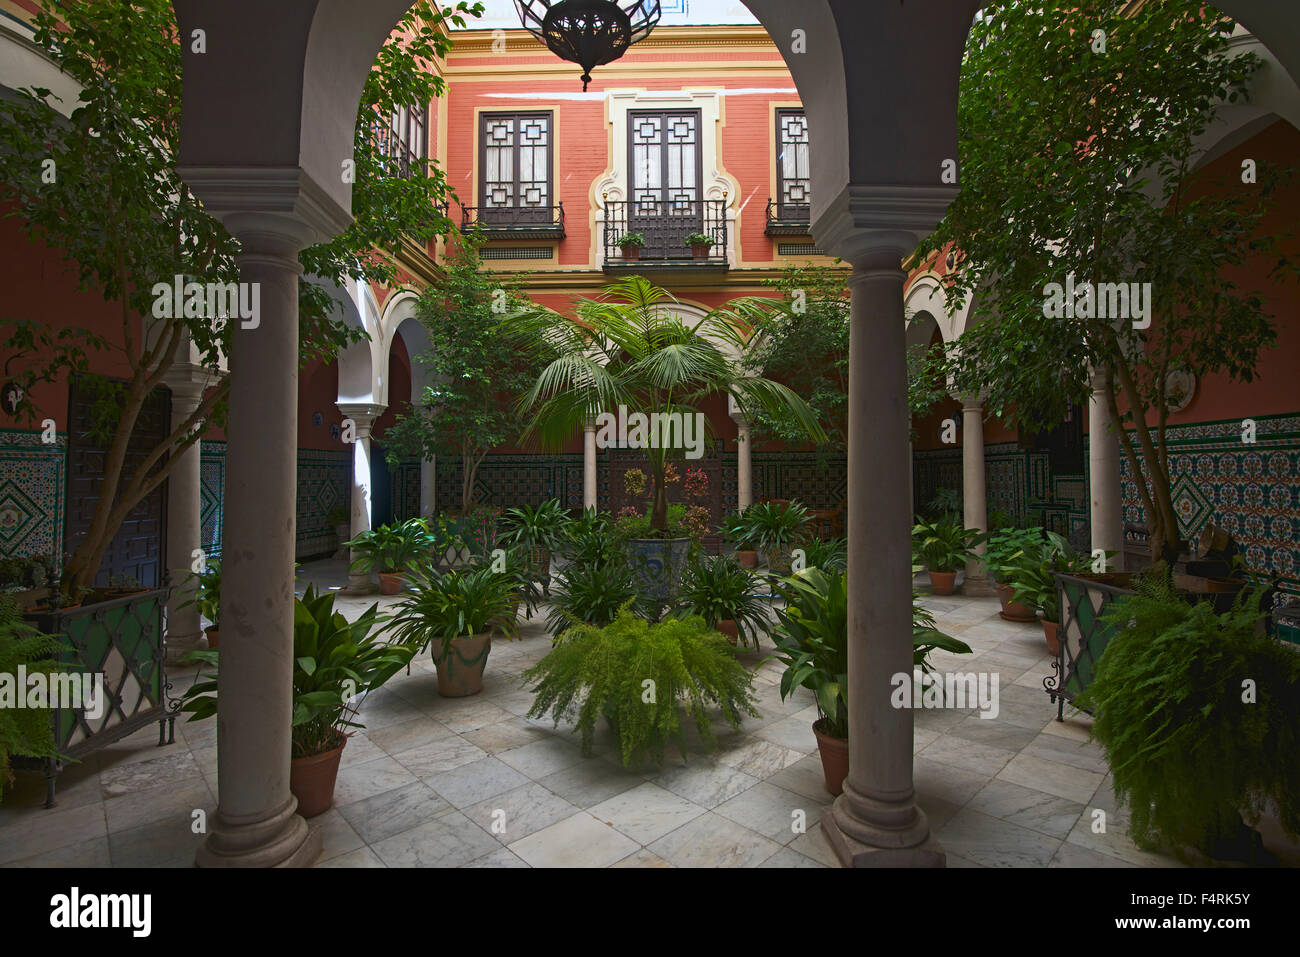 andalusia, spain, europe, outside, day, inner courtyard, house